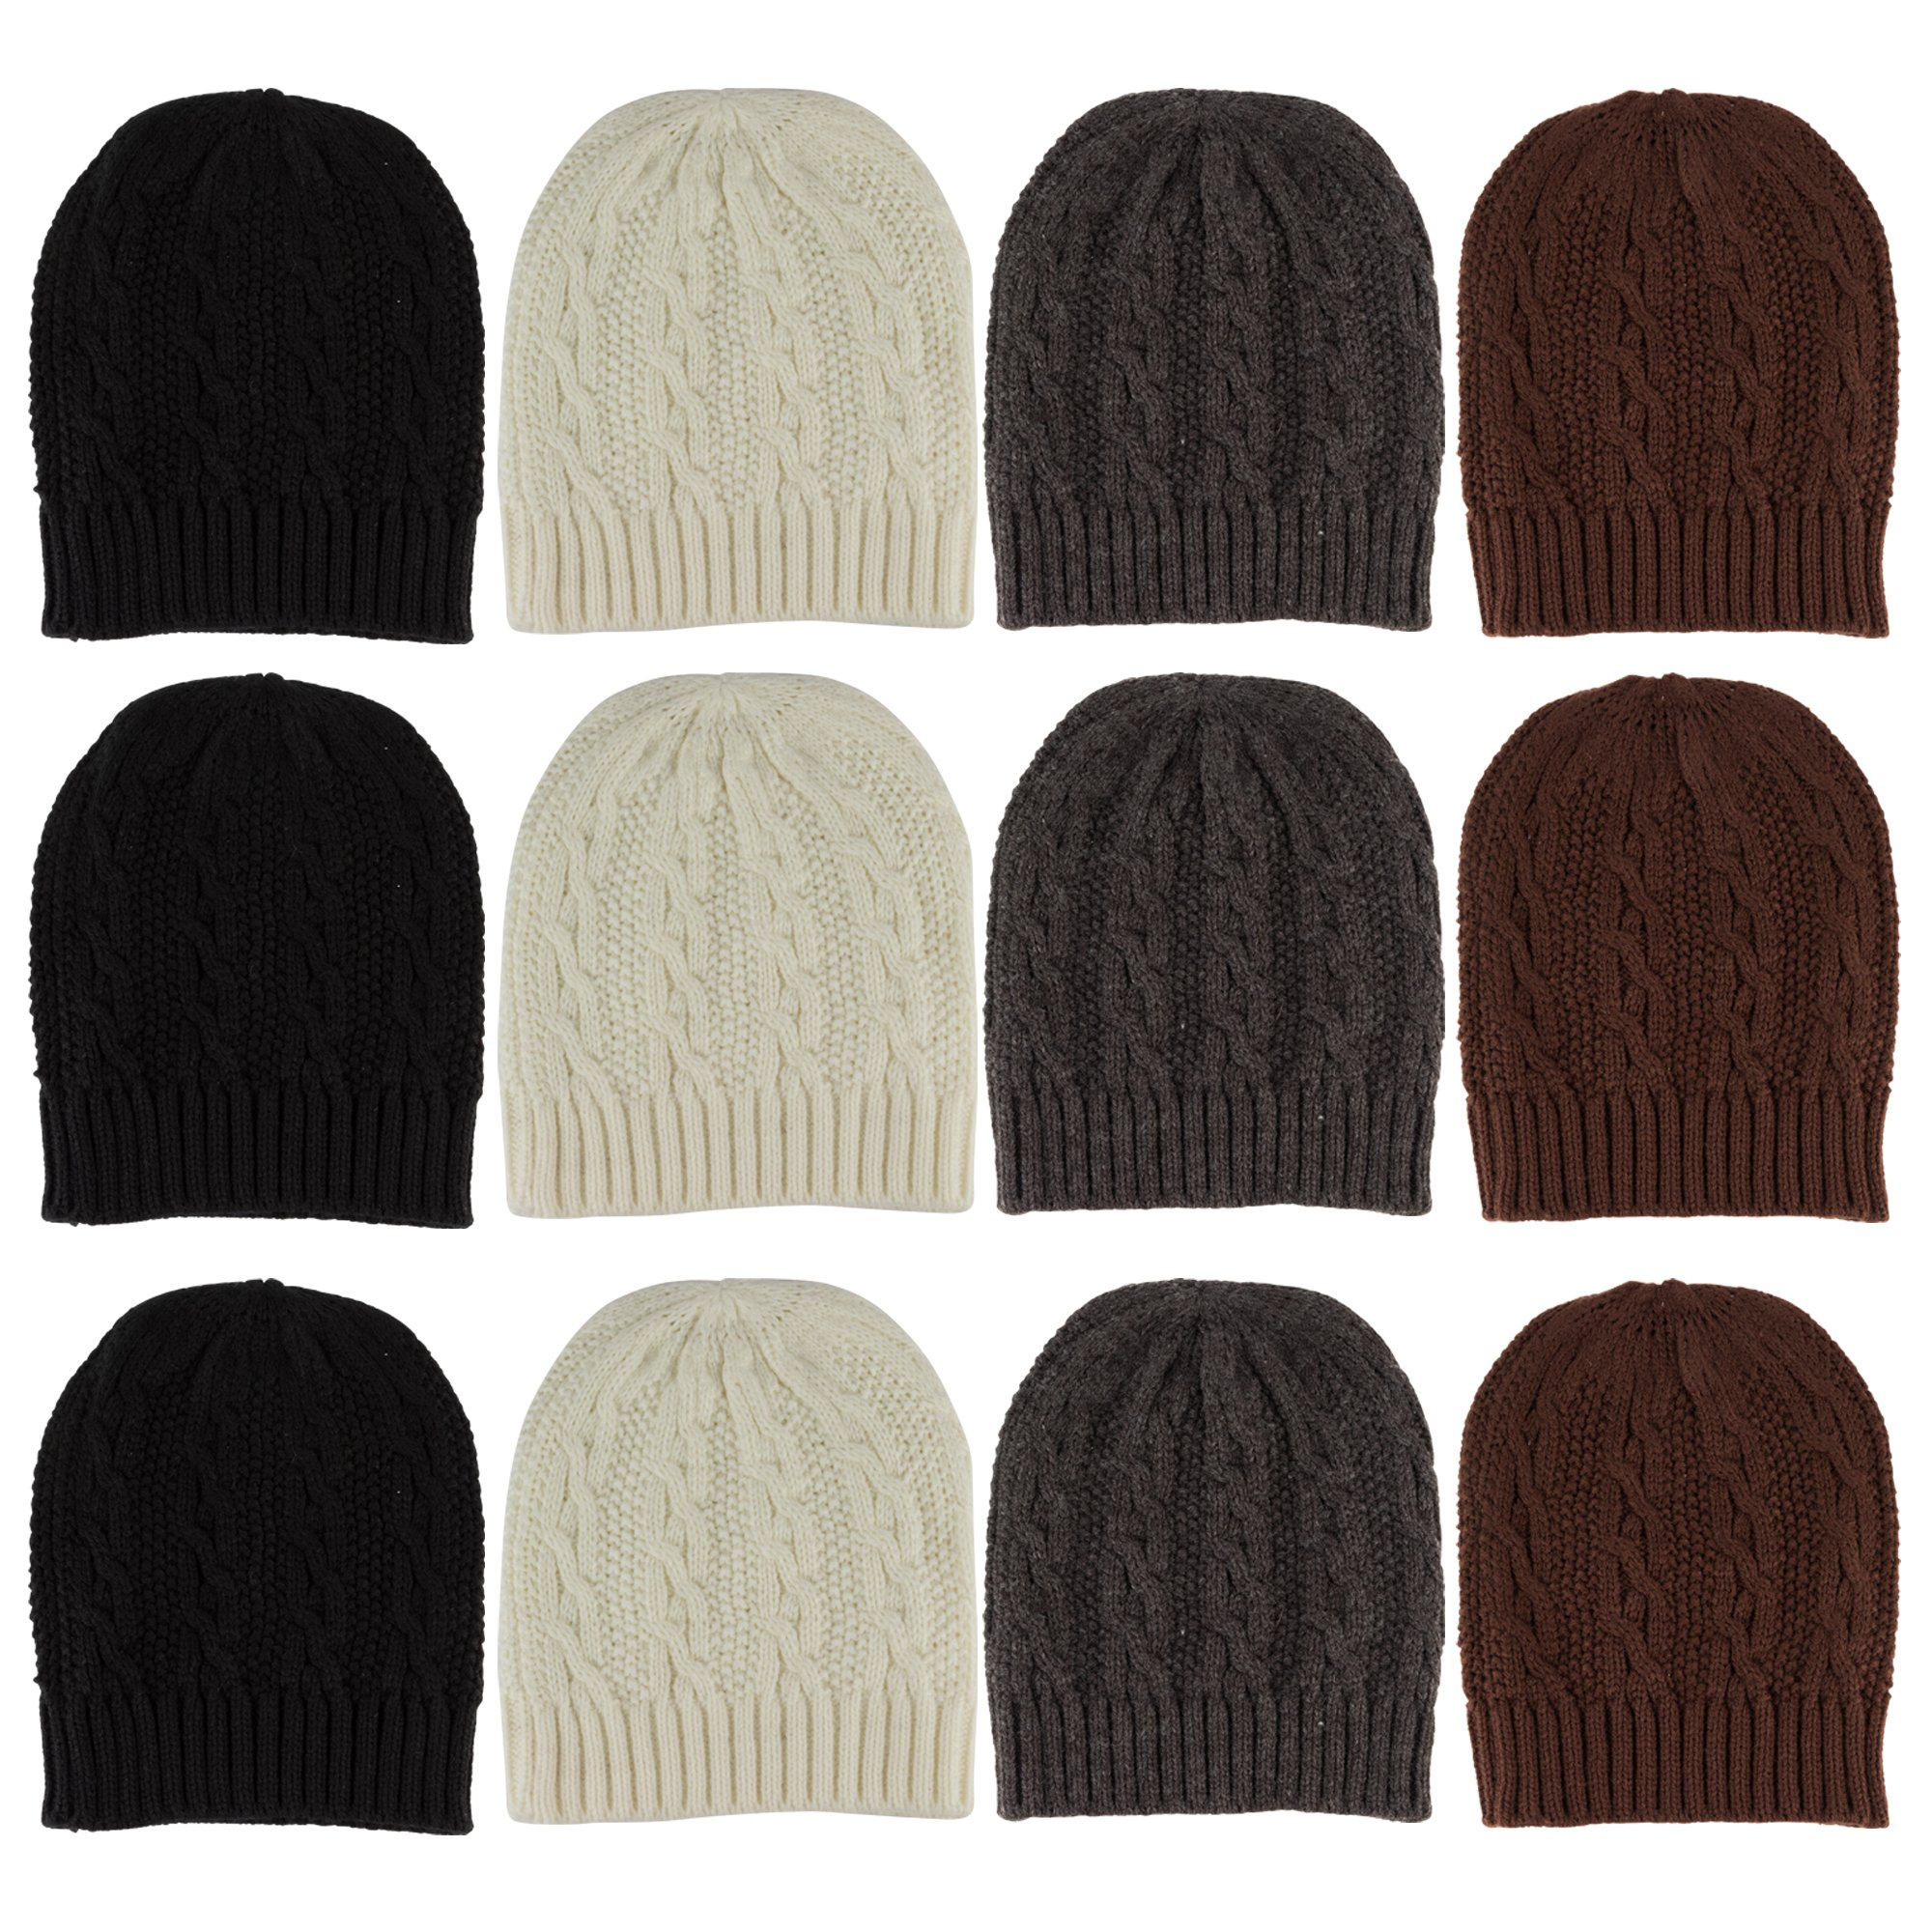 YACHT & SMITH Mens Womens Warm Winter Hats in Assorted Colors, Mens Womens Unisex (12 Pack Cable Knits) by YACHT & SMITH